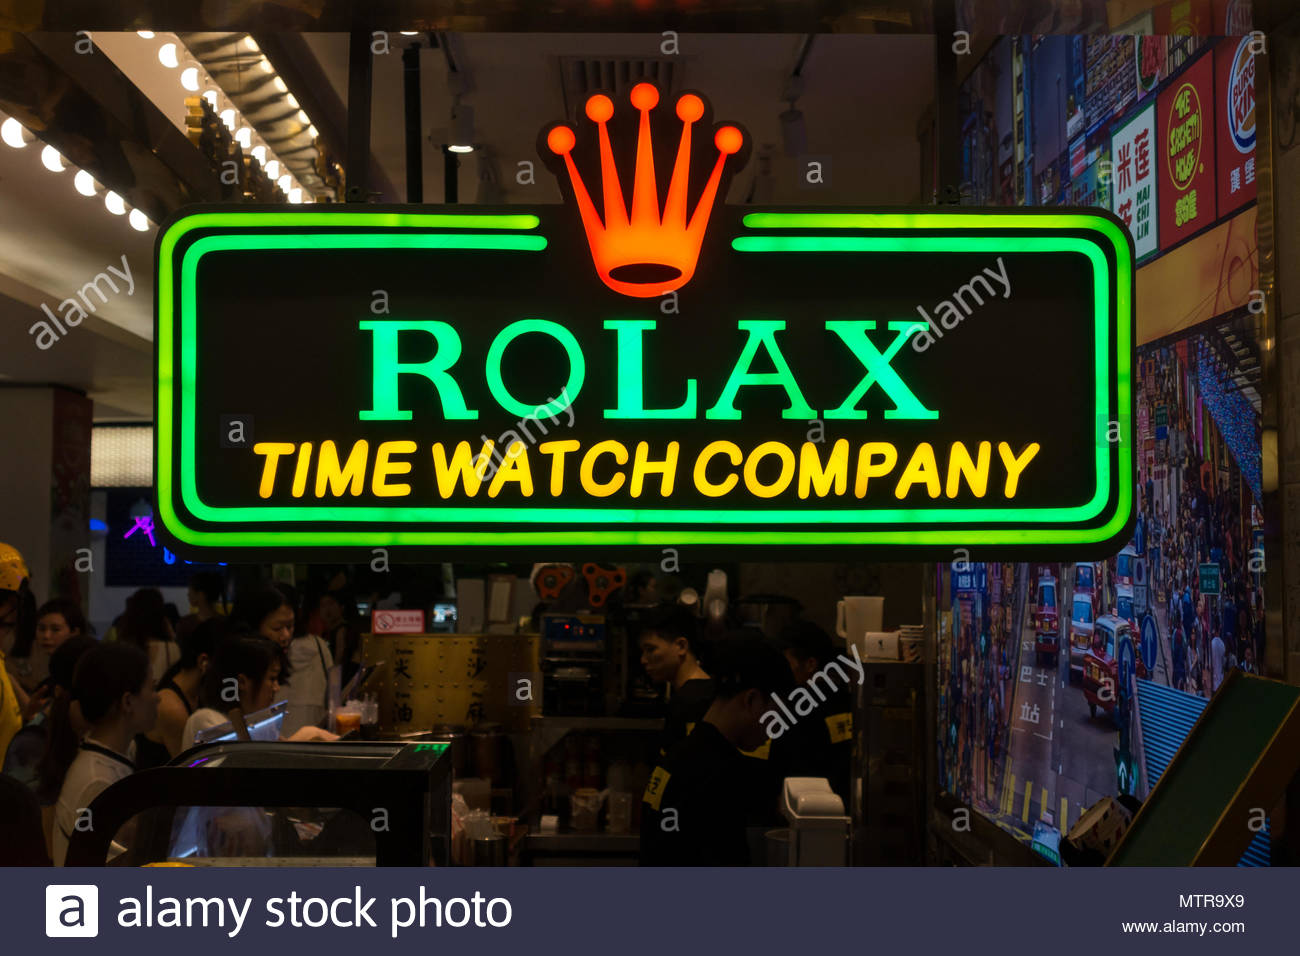 fake-or-counterfeit-goods-and-products-sold-in-china-store-sign-with-rolex-misspelled-mtr9x9.jpg